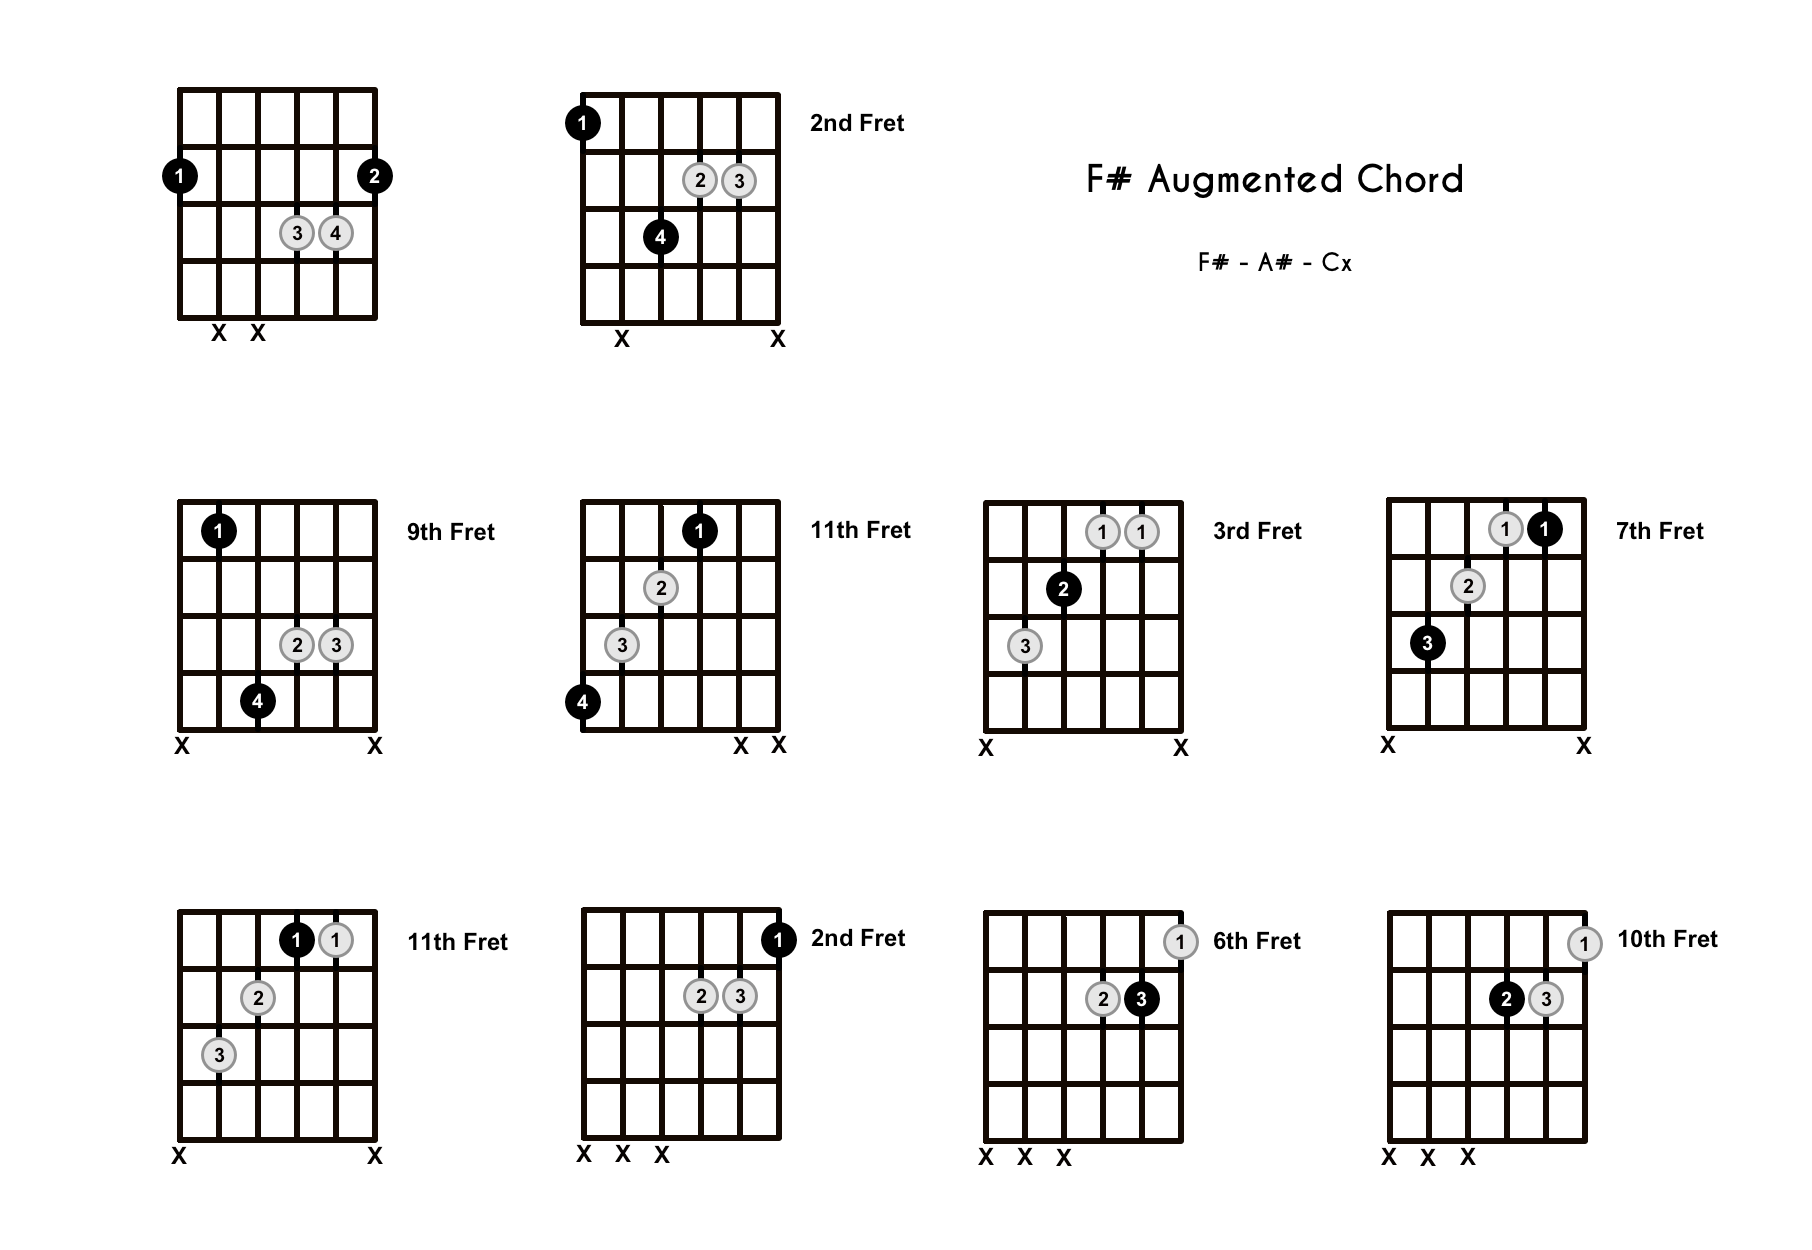 F Sharp Augmented Chord on the Guitar (F#+) – Diagrams, Finger Positions, Theory